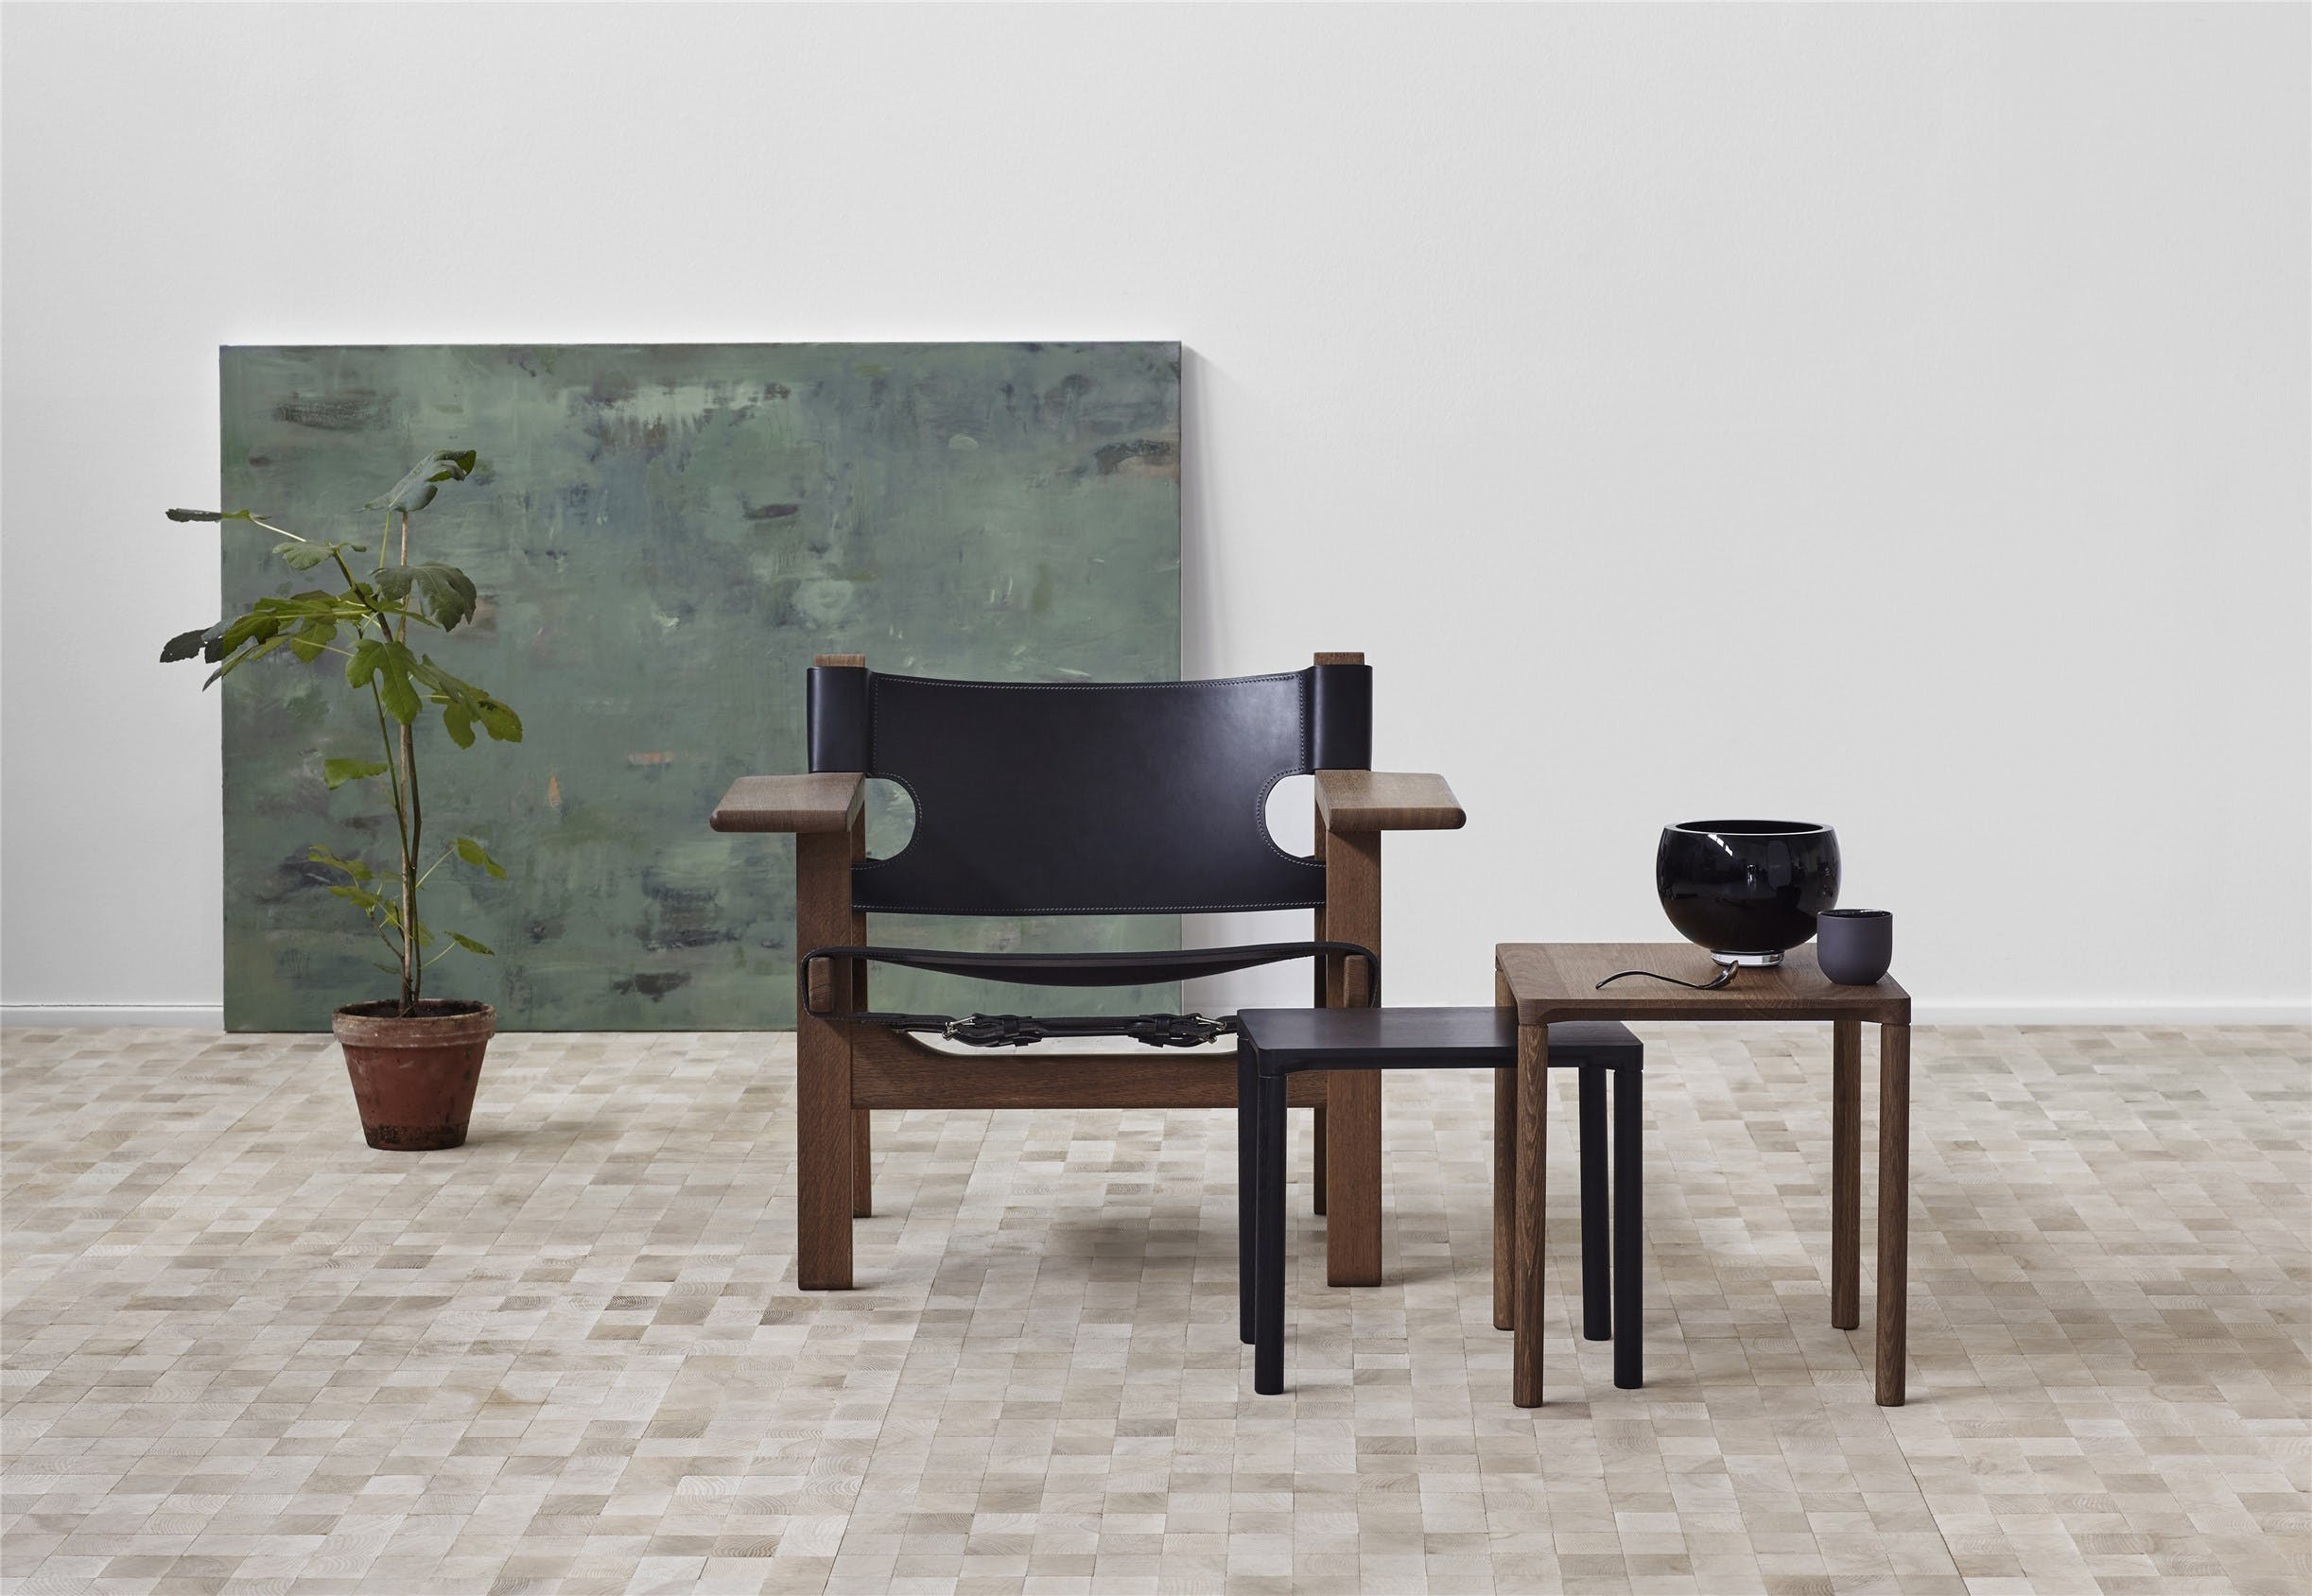 With the Spanish Chair Mogensen expanded upon his work with solid oak and saddle leather. The chair was launched in 1958 as part of an innovative living space exhibition, in which all tables were removed from the floor to create an open living space.